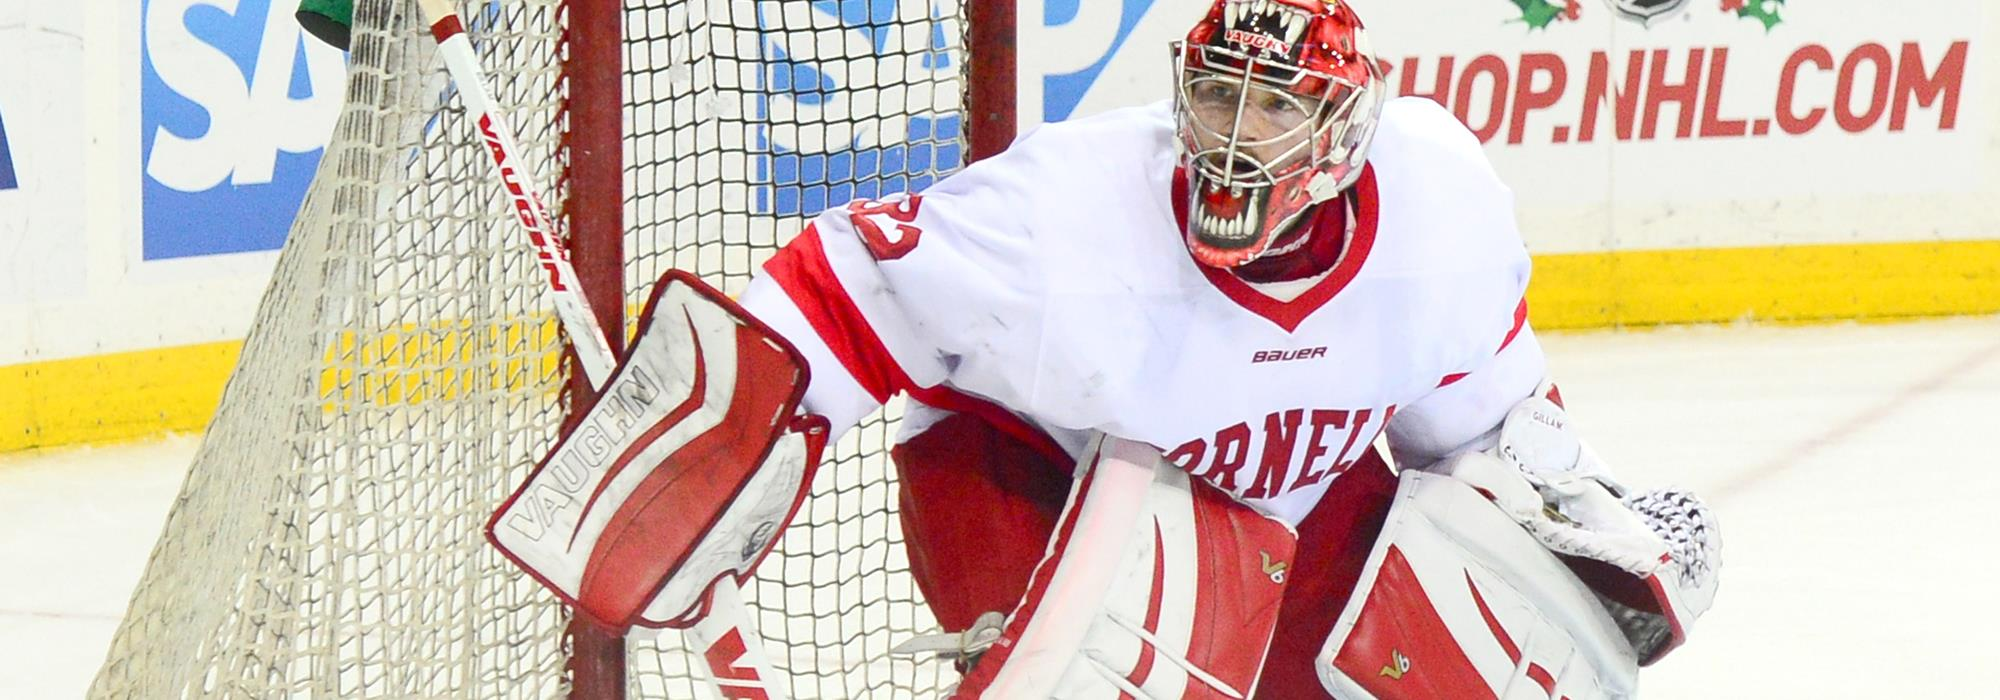 ECAC: Cornell Tops Colgate, 4-0, In Gillam's 10th Shutout